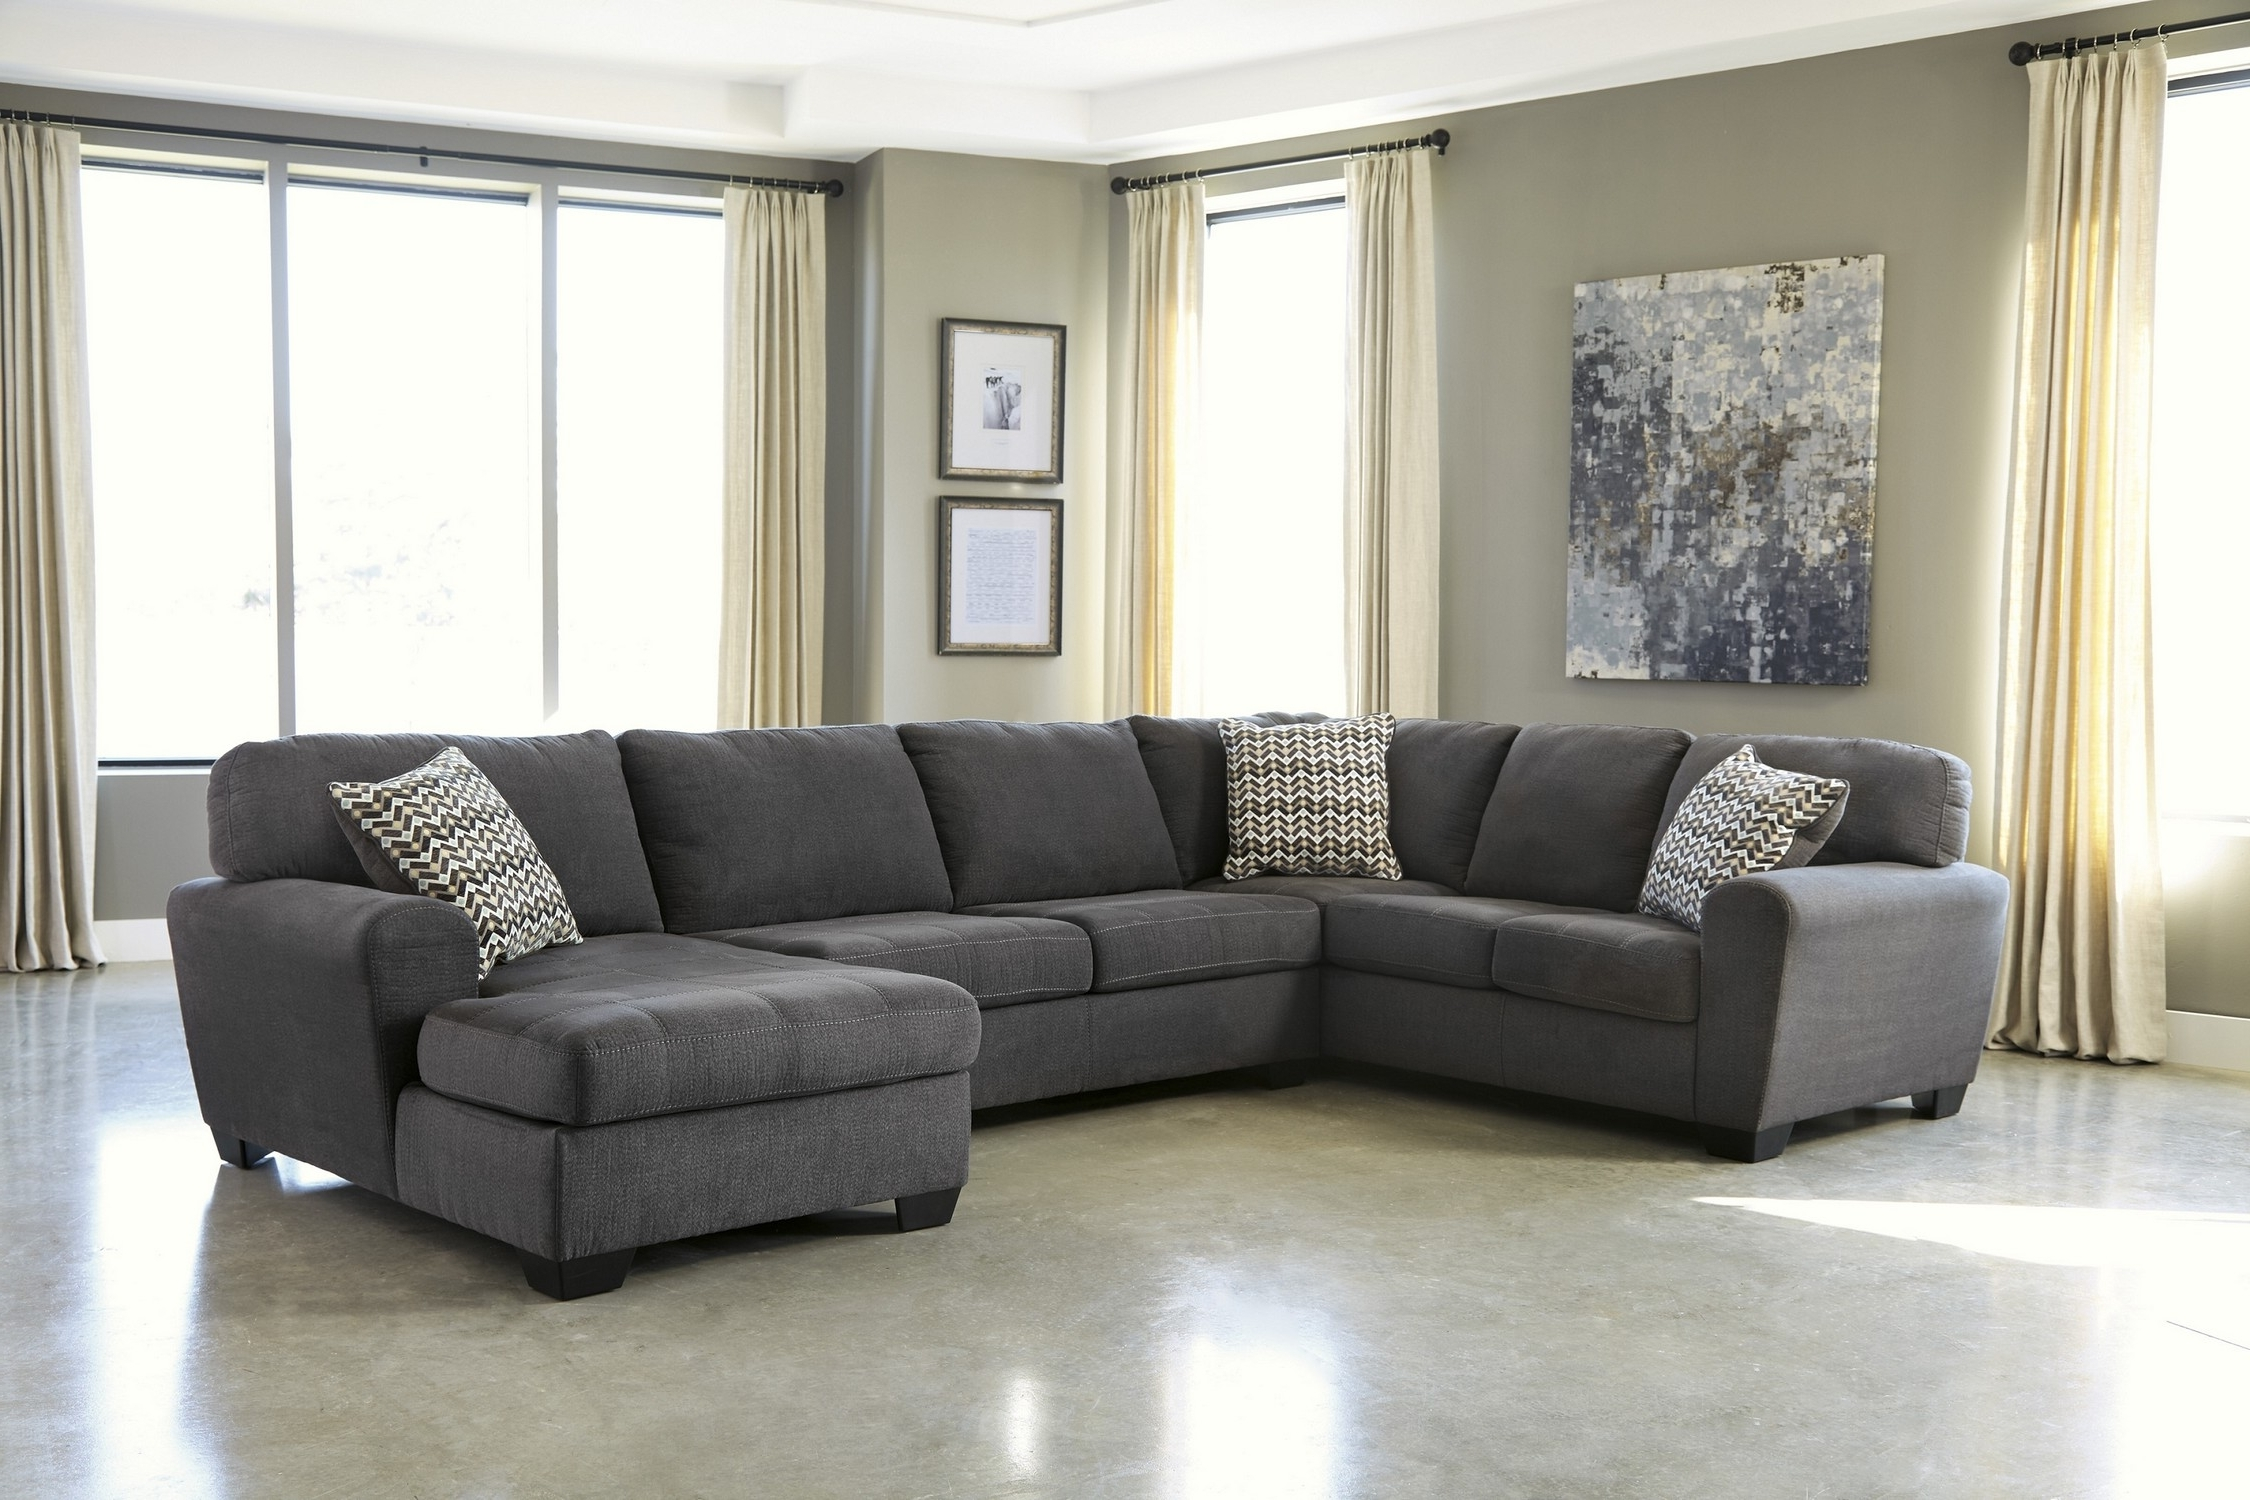 Gray Living Room Sectionals Ashley Furniture Alenya Sectional With Fashionable Gray Sectionals With Chaise (View 4 of 15)